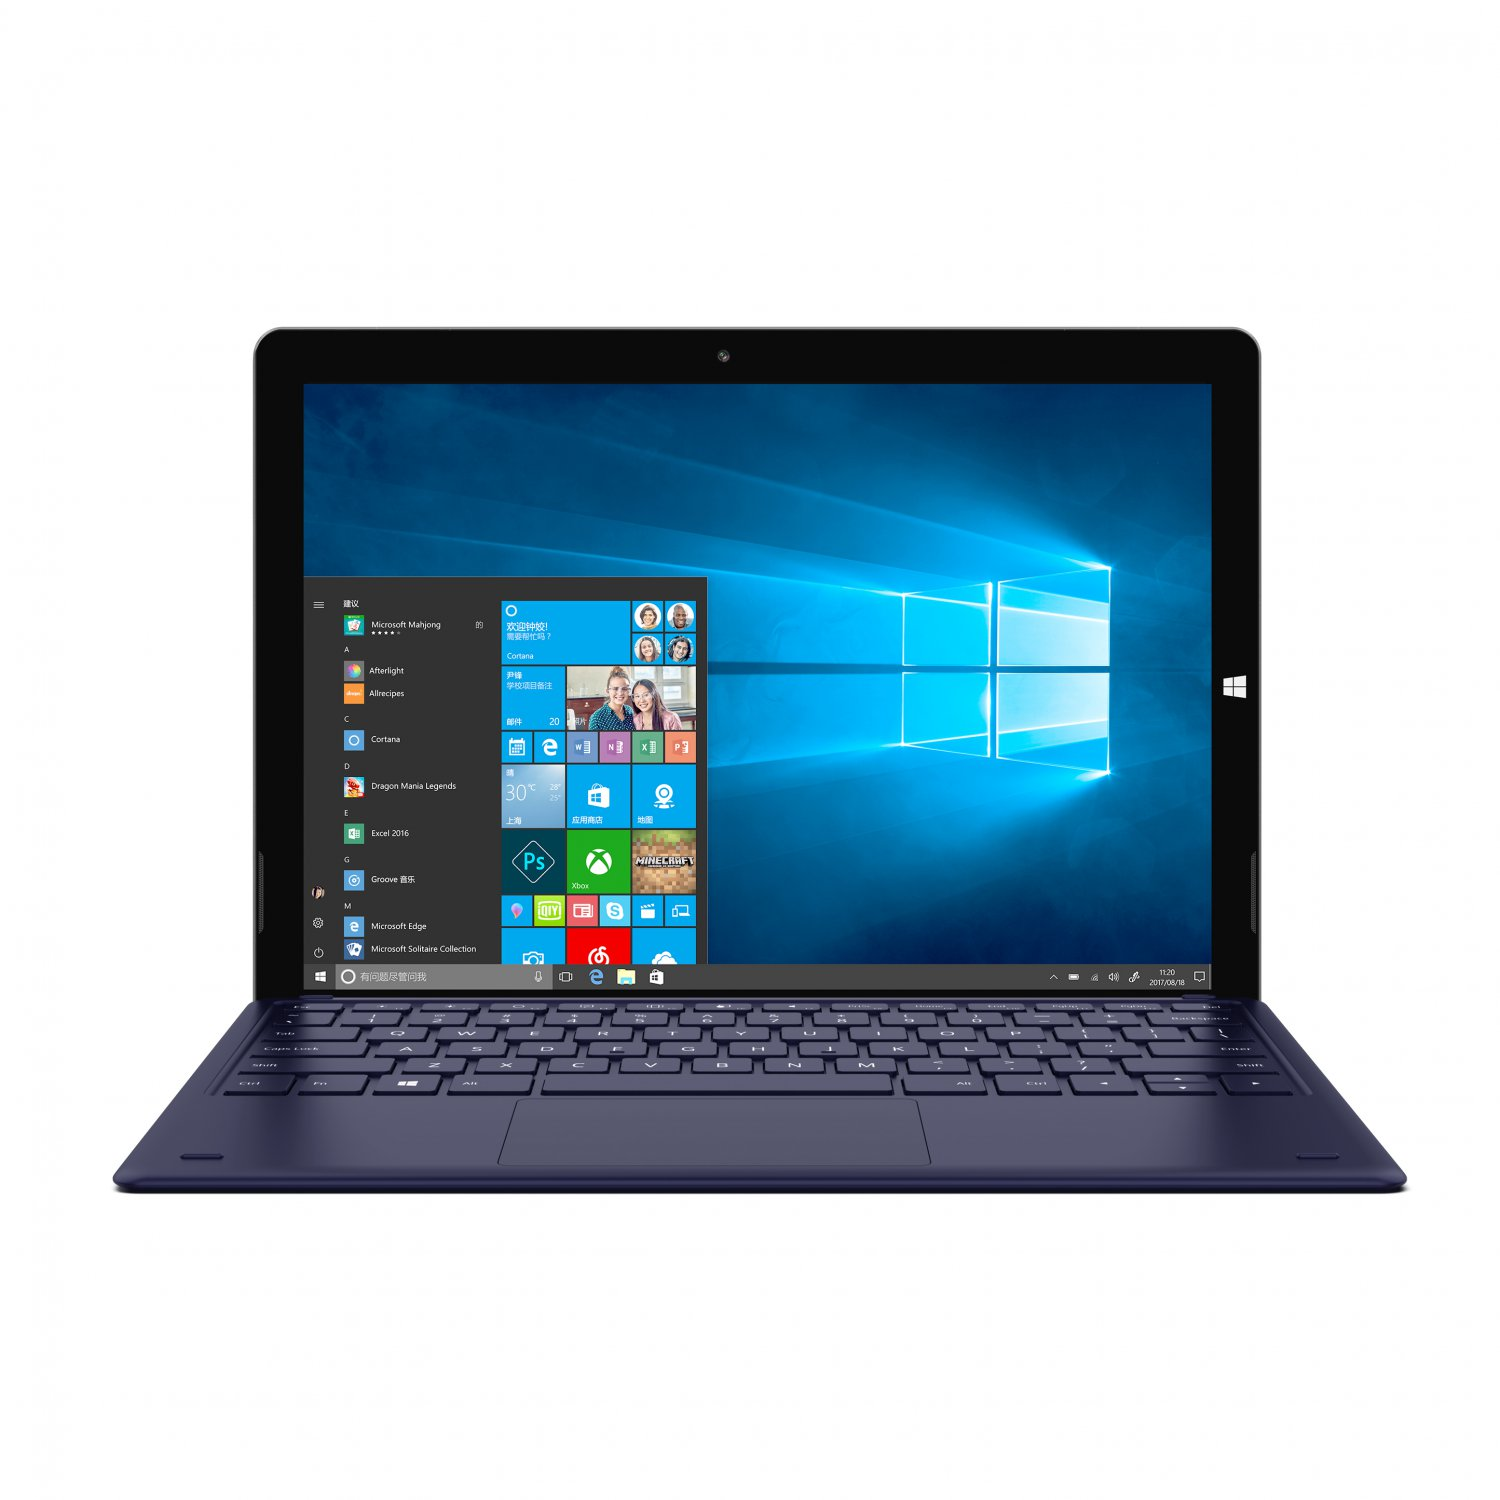 Teclast X6 PRO Windows10 12.6 Inch Display 8GB RAM 256GB ROM Dual Camera HDMI 2 in 1 Tablet Silver